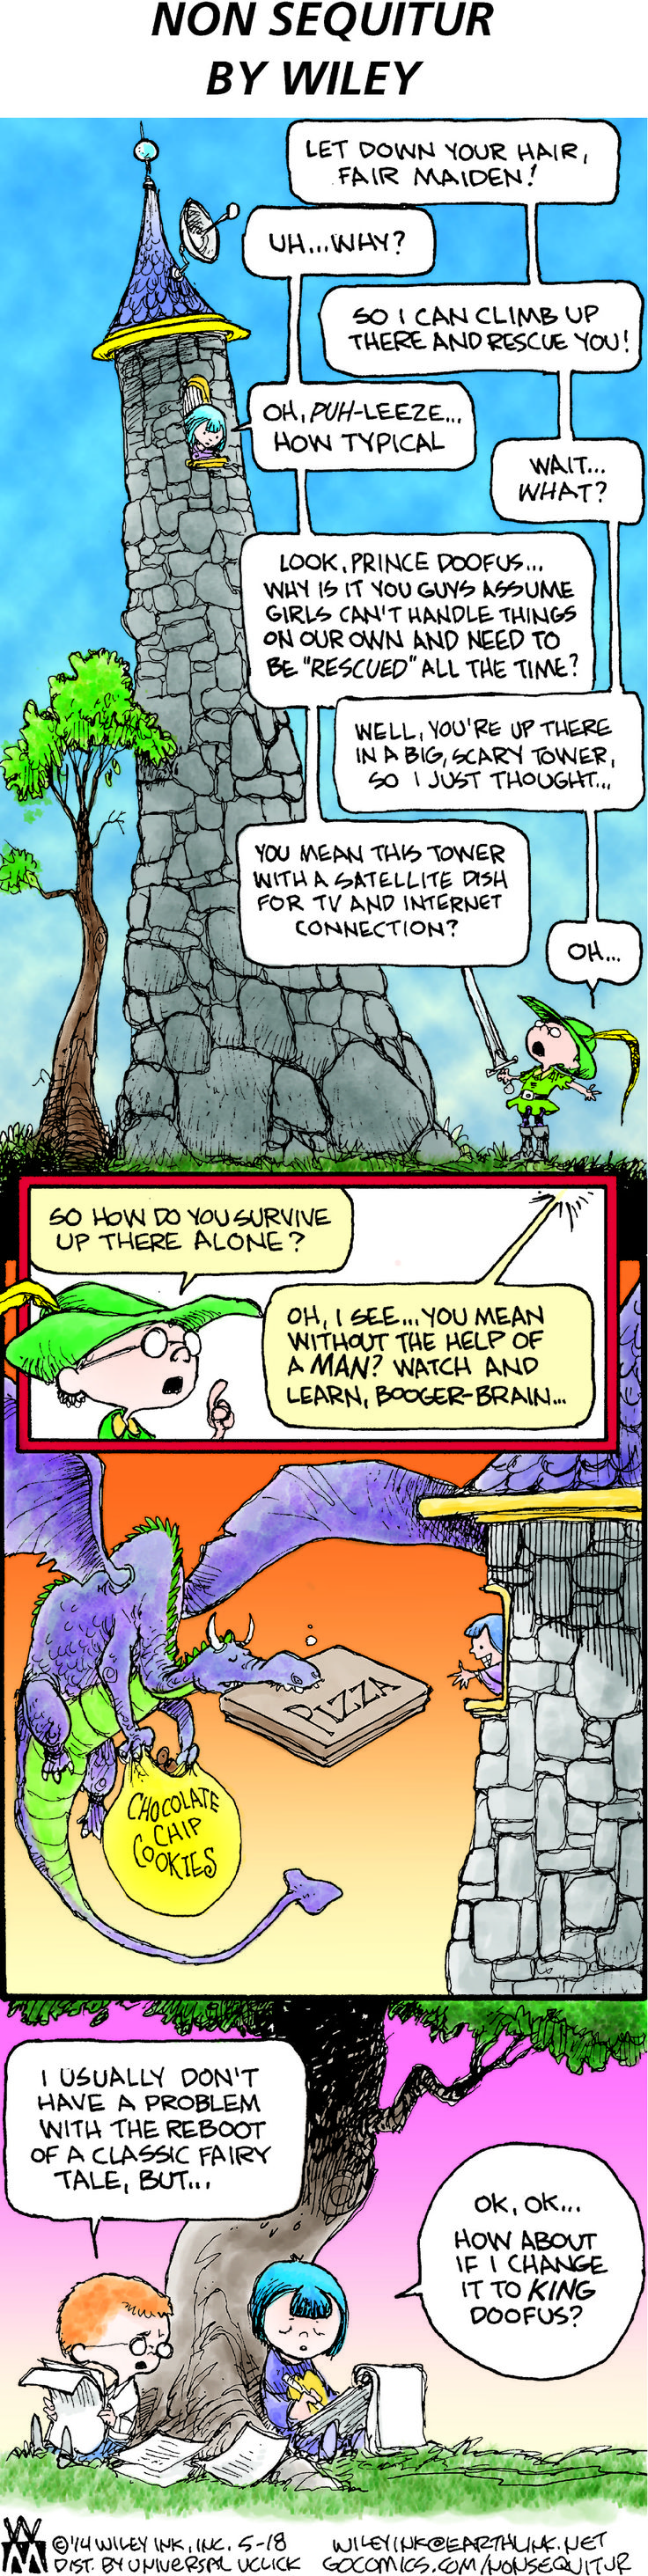 My Favorite Cartoonist Smashes A Sexist Fairy Tale Trope In One Hilarious Swoop